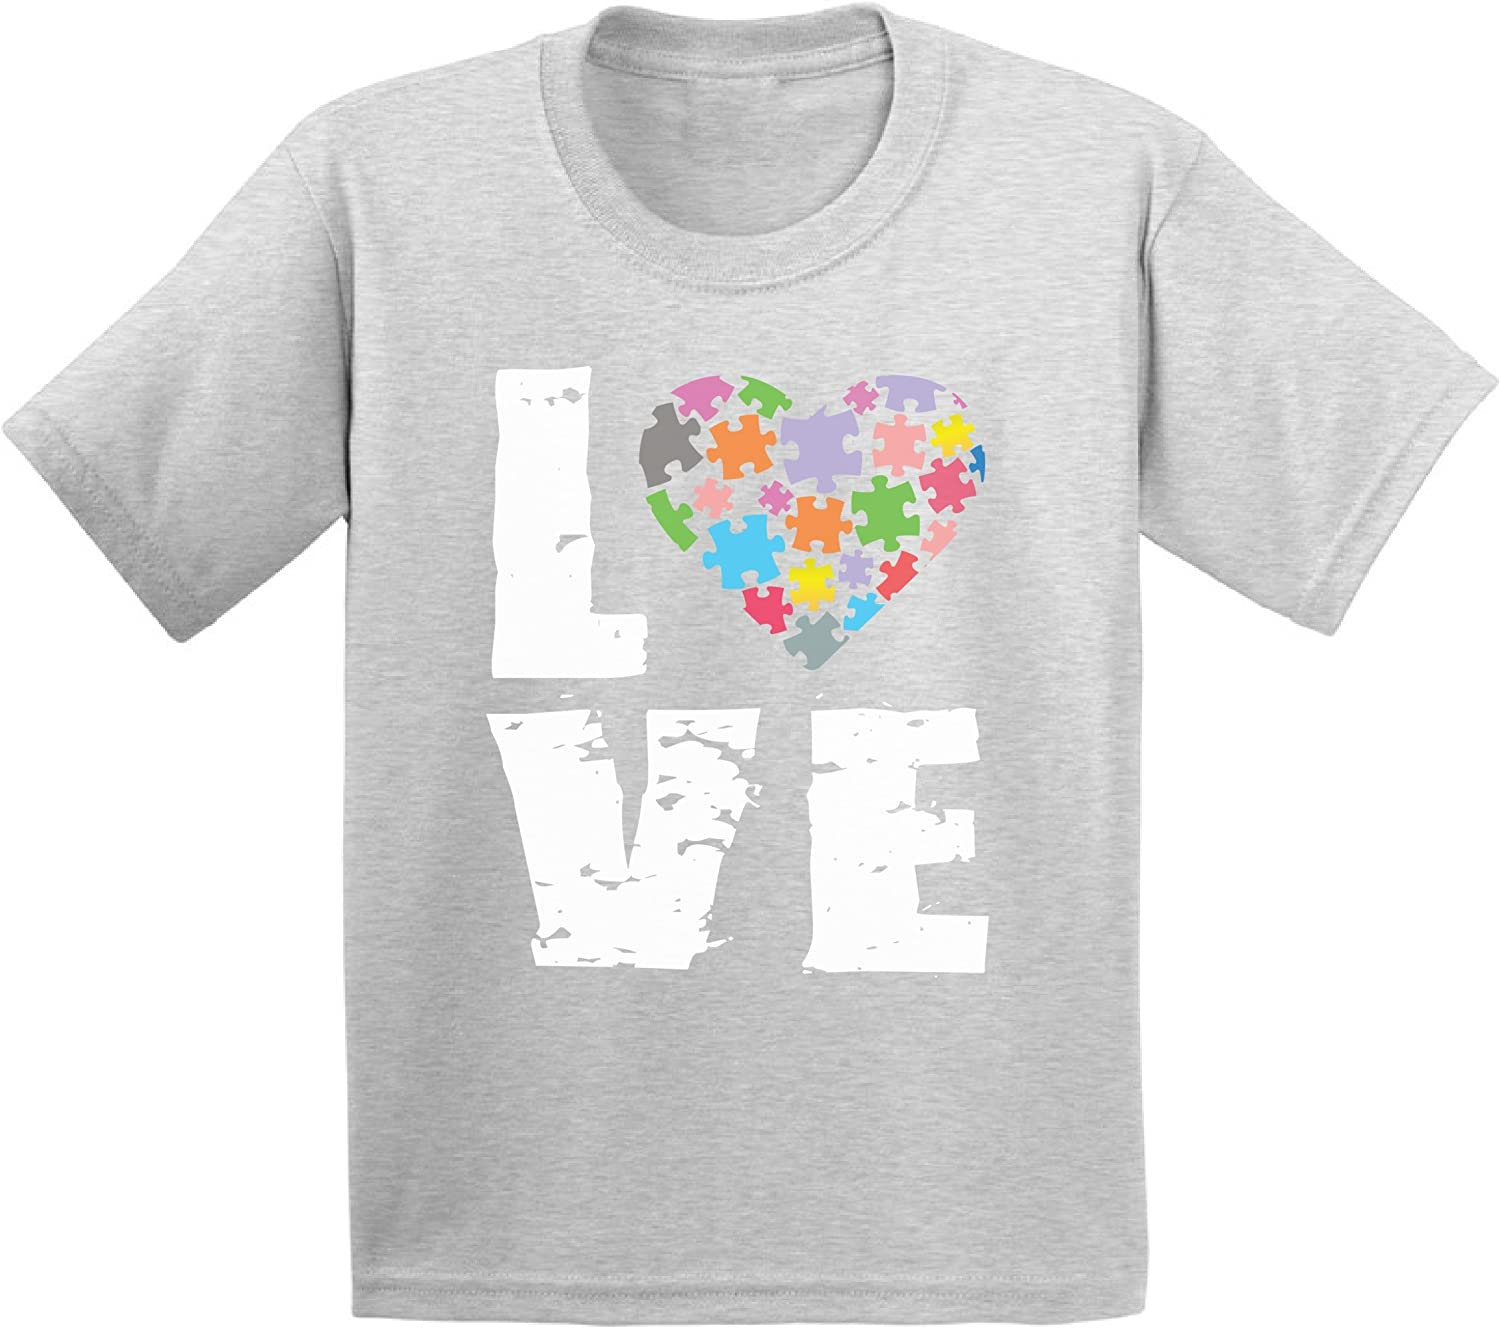 Awkward Styles Autism Awareness Shirts for Toddlers Girl Boy Autism Shirt Puzzle